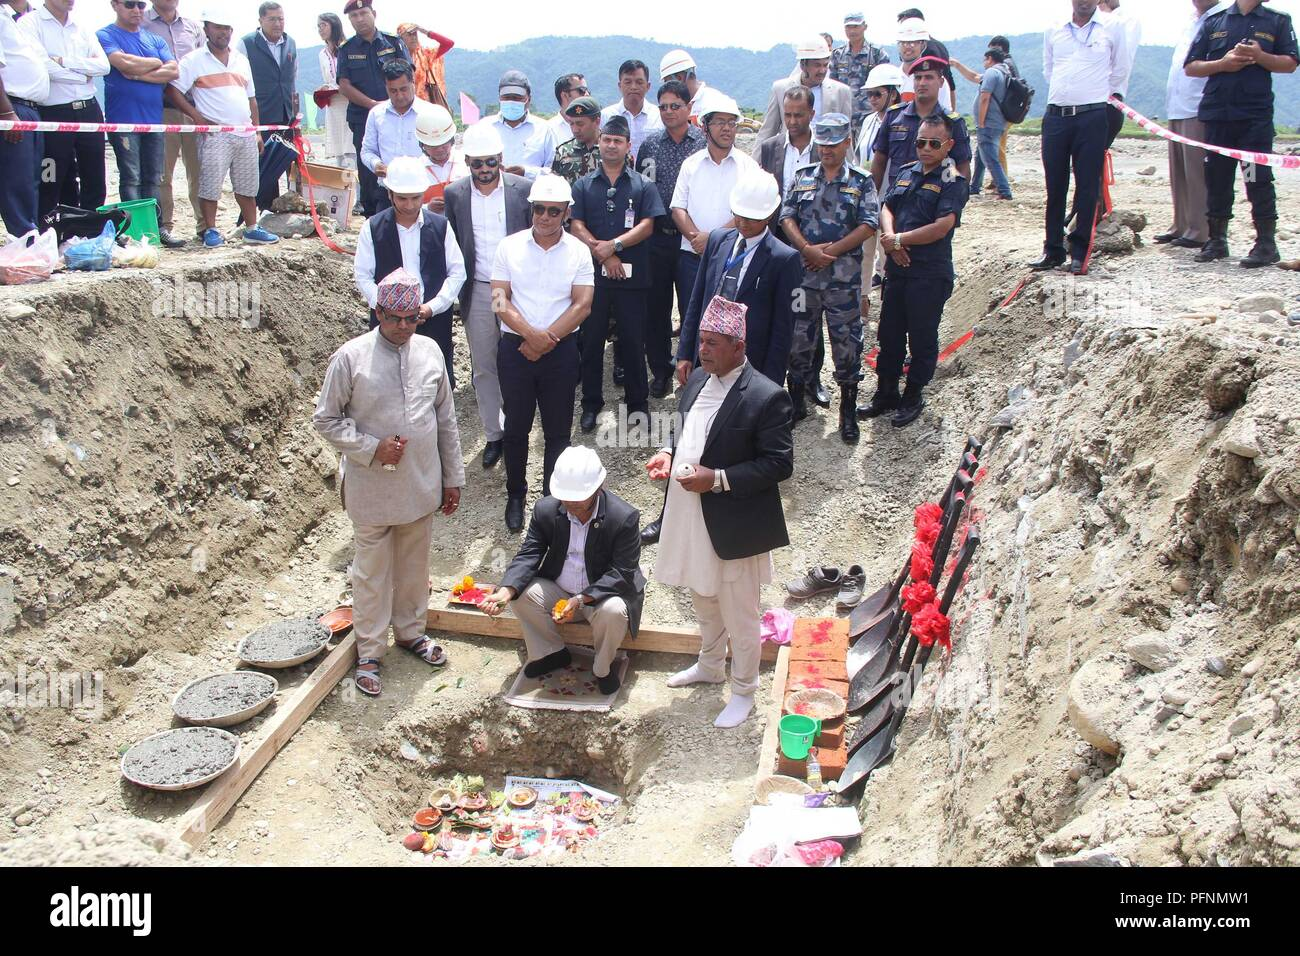 (180823) -- POKHARA, Aug. 23, 2018 -- Nepali Minister for Culture, Tourism and Civil Aviation Rabindra Adhikari lays the foundation stone of the construction of the terminal buildings at China-assisted Pokhara international airport in Pokhara,Nepal, Aug. 22 , 2018. Construction of two separate terminal buildings, one for international and another for domestic flights, began at the China-assisted Pokhara international airport on Wednesday. (Xinhua/Krishna Mani Baral)(dh) - Stock Image